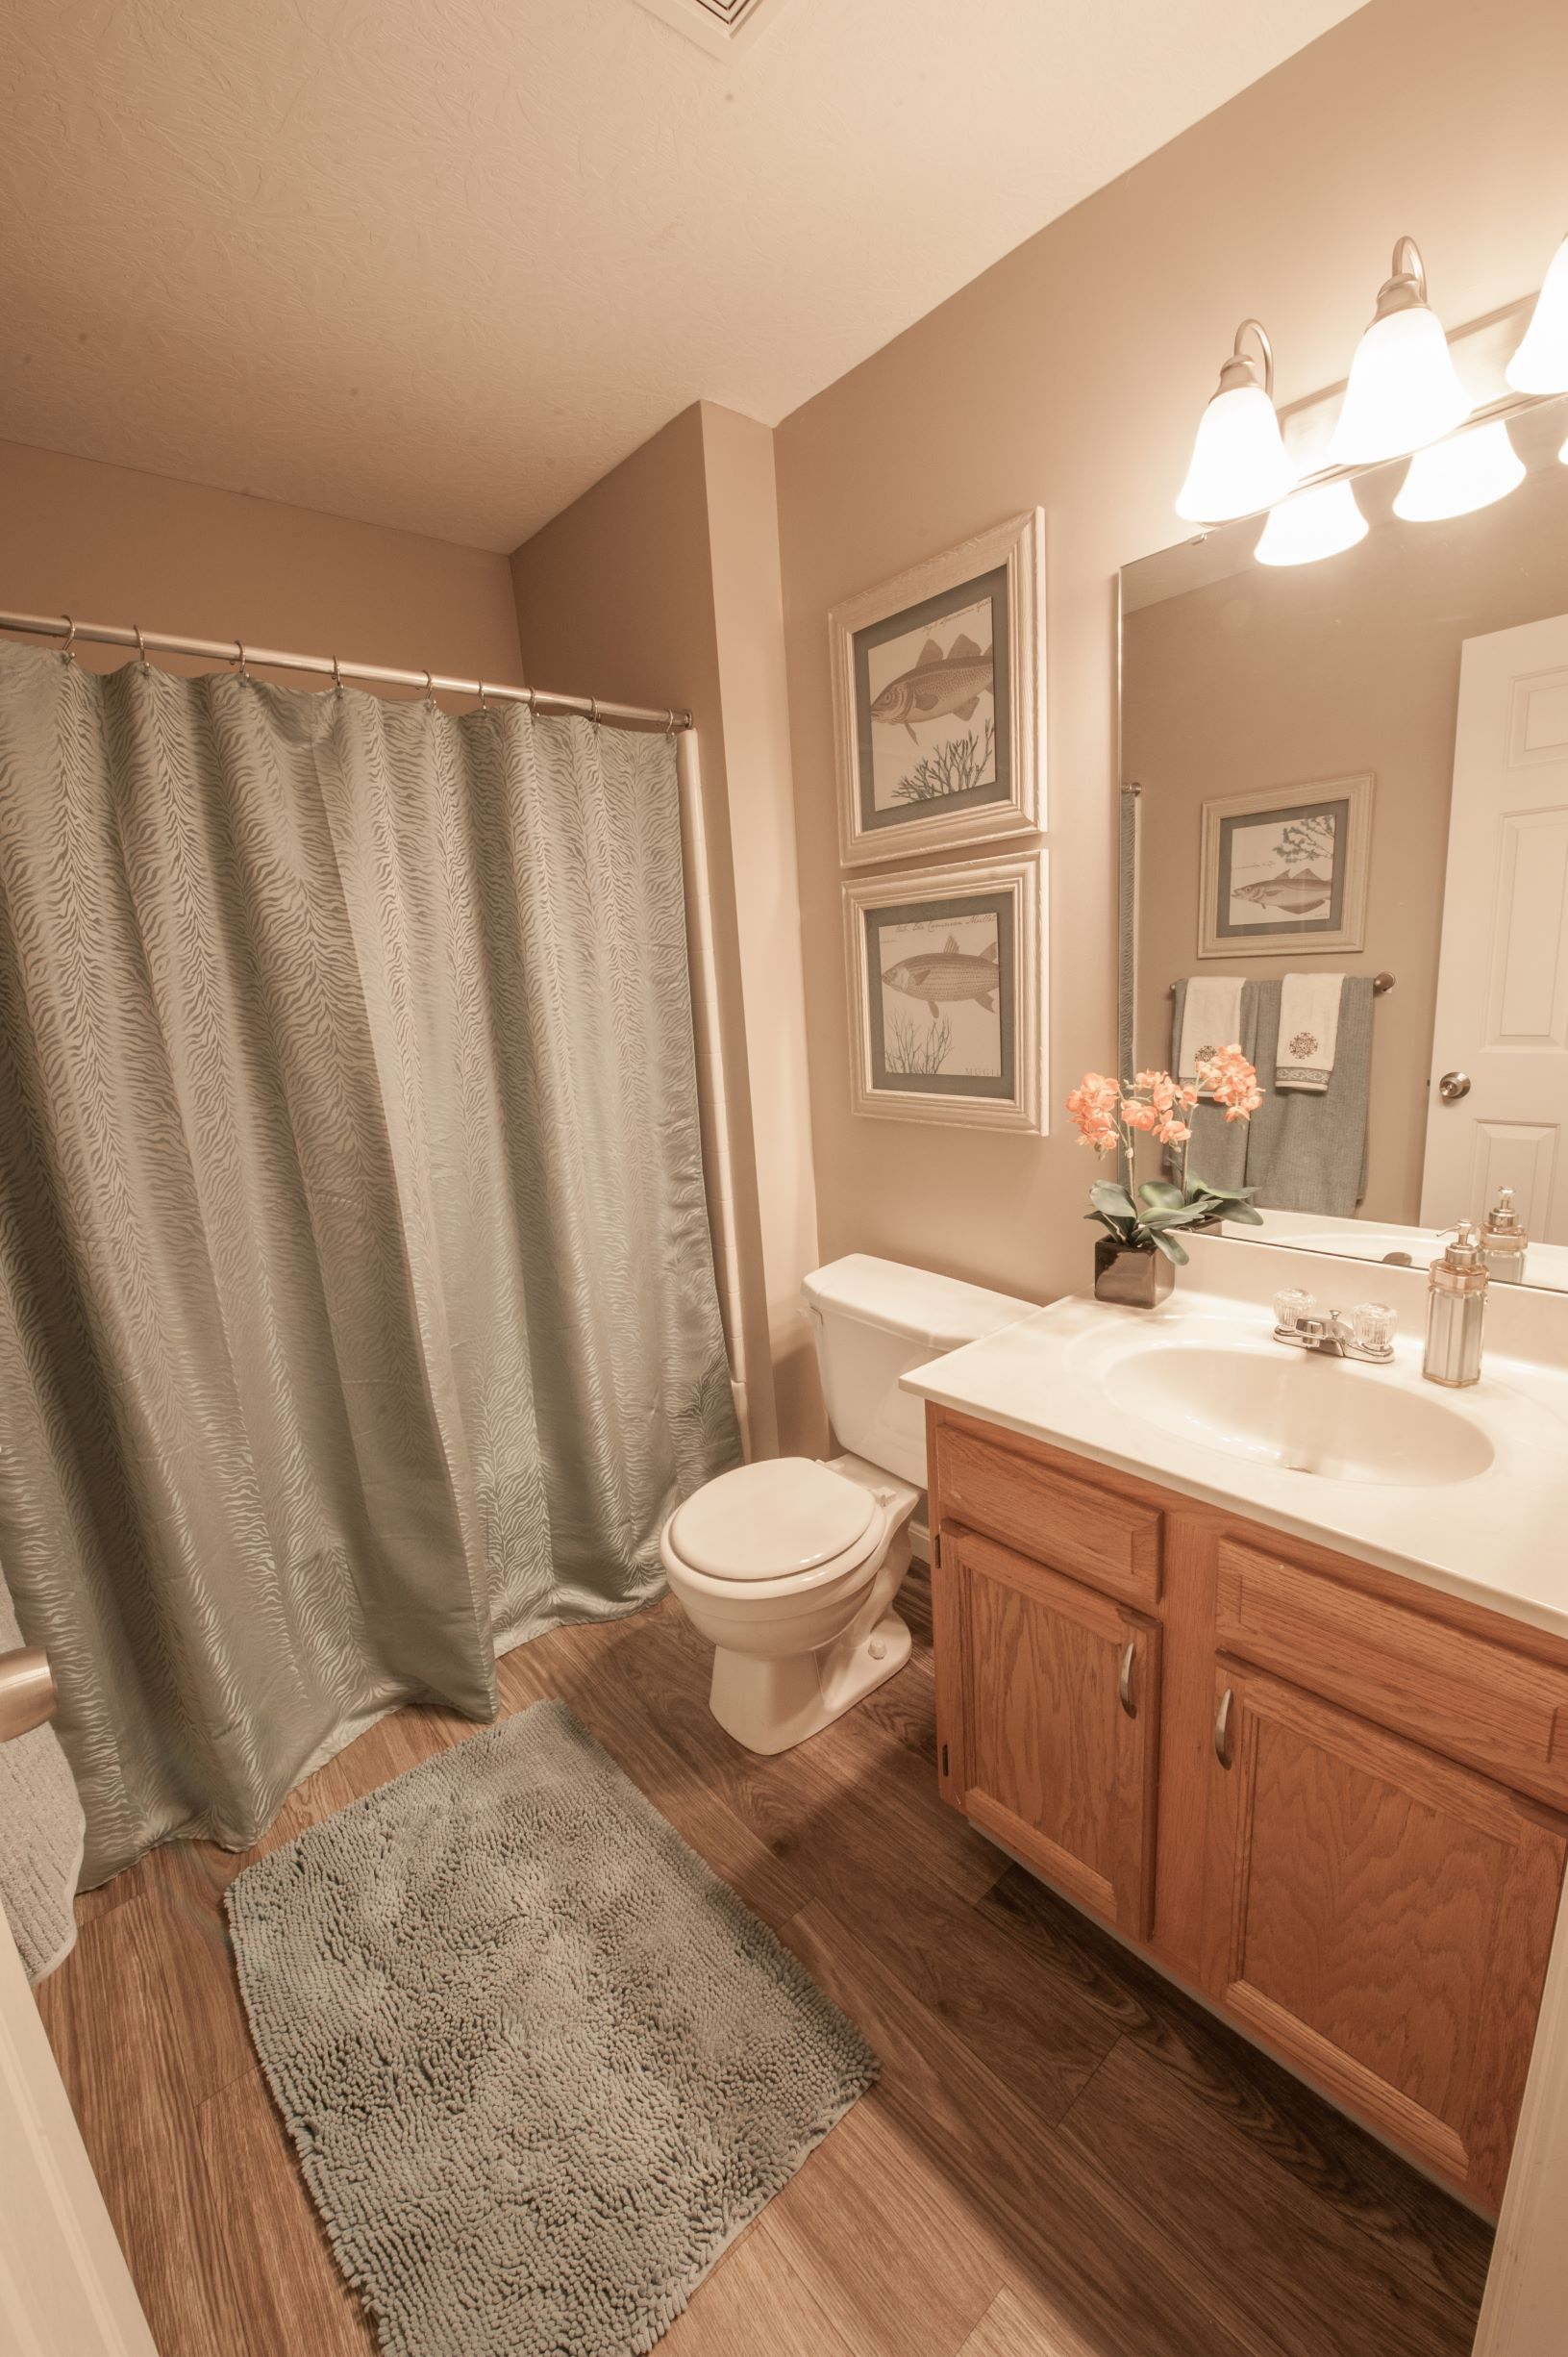 Shower and Bathtub Combination at Stone Bridge Apartments in Mason, Ohio